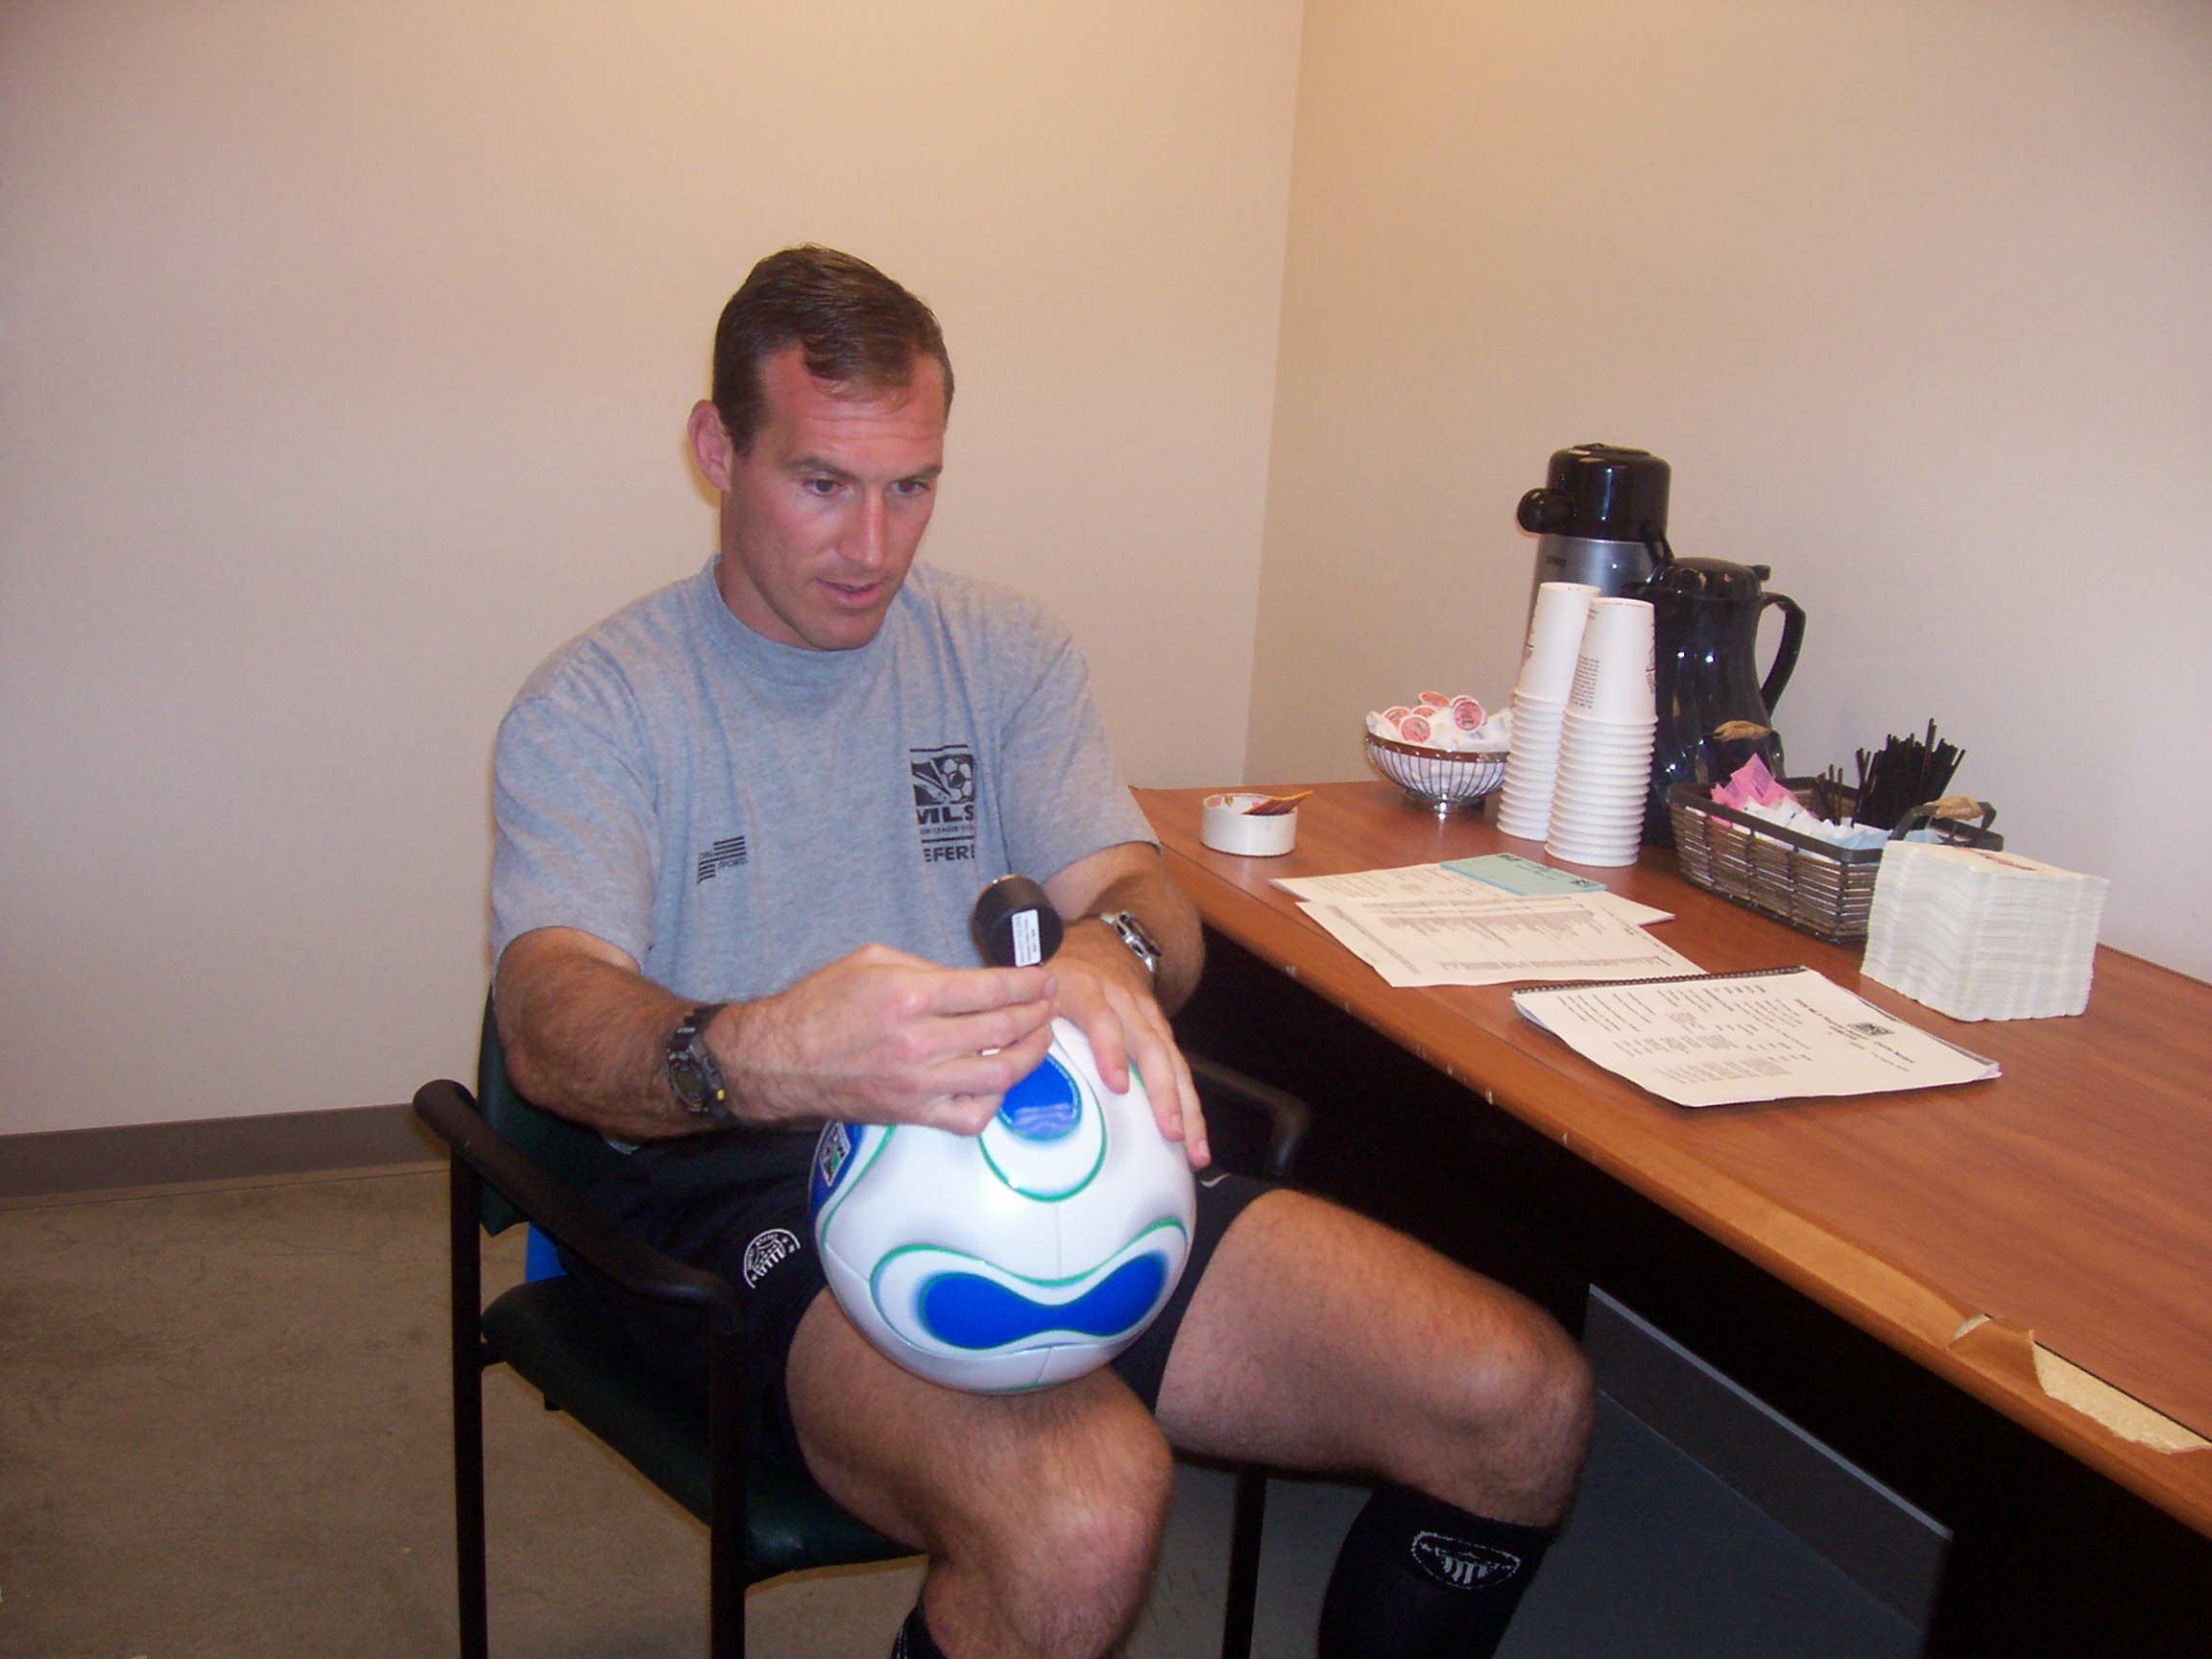 FIFA and MLS referee Terry Vaughn, sometime in 2005. PRO assistant referees are all wearing blue wristbands in support of Terry and Huntington Disease Awareness Month. To find out more and how you can contribute,  click here.